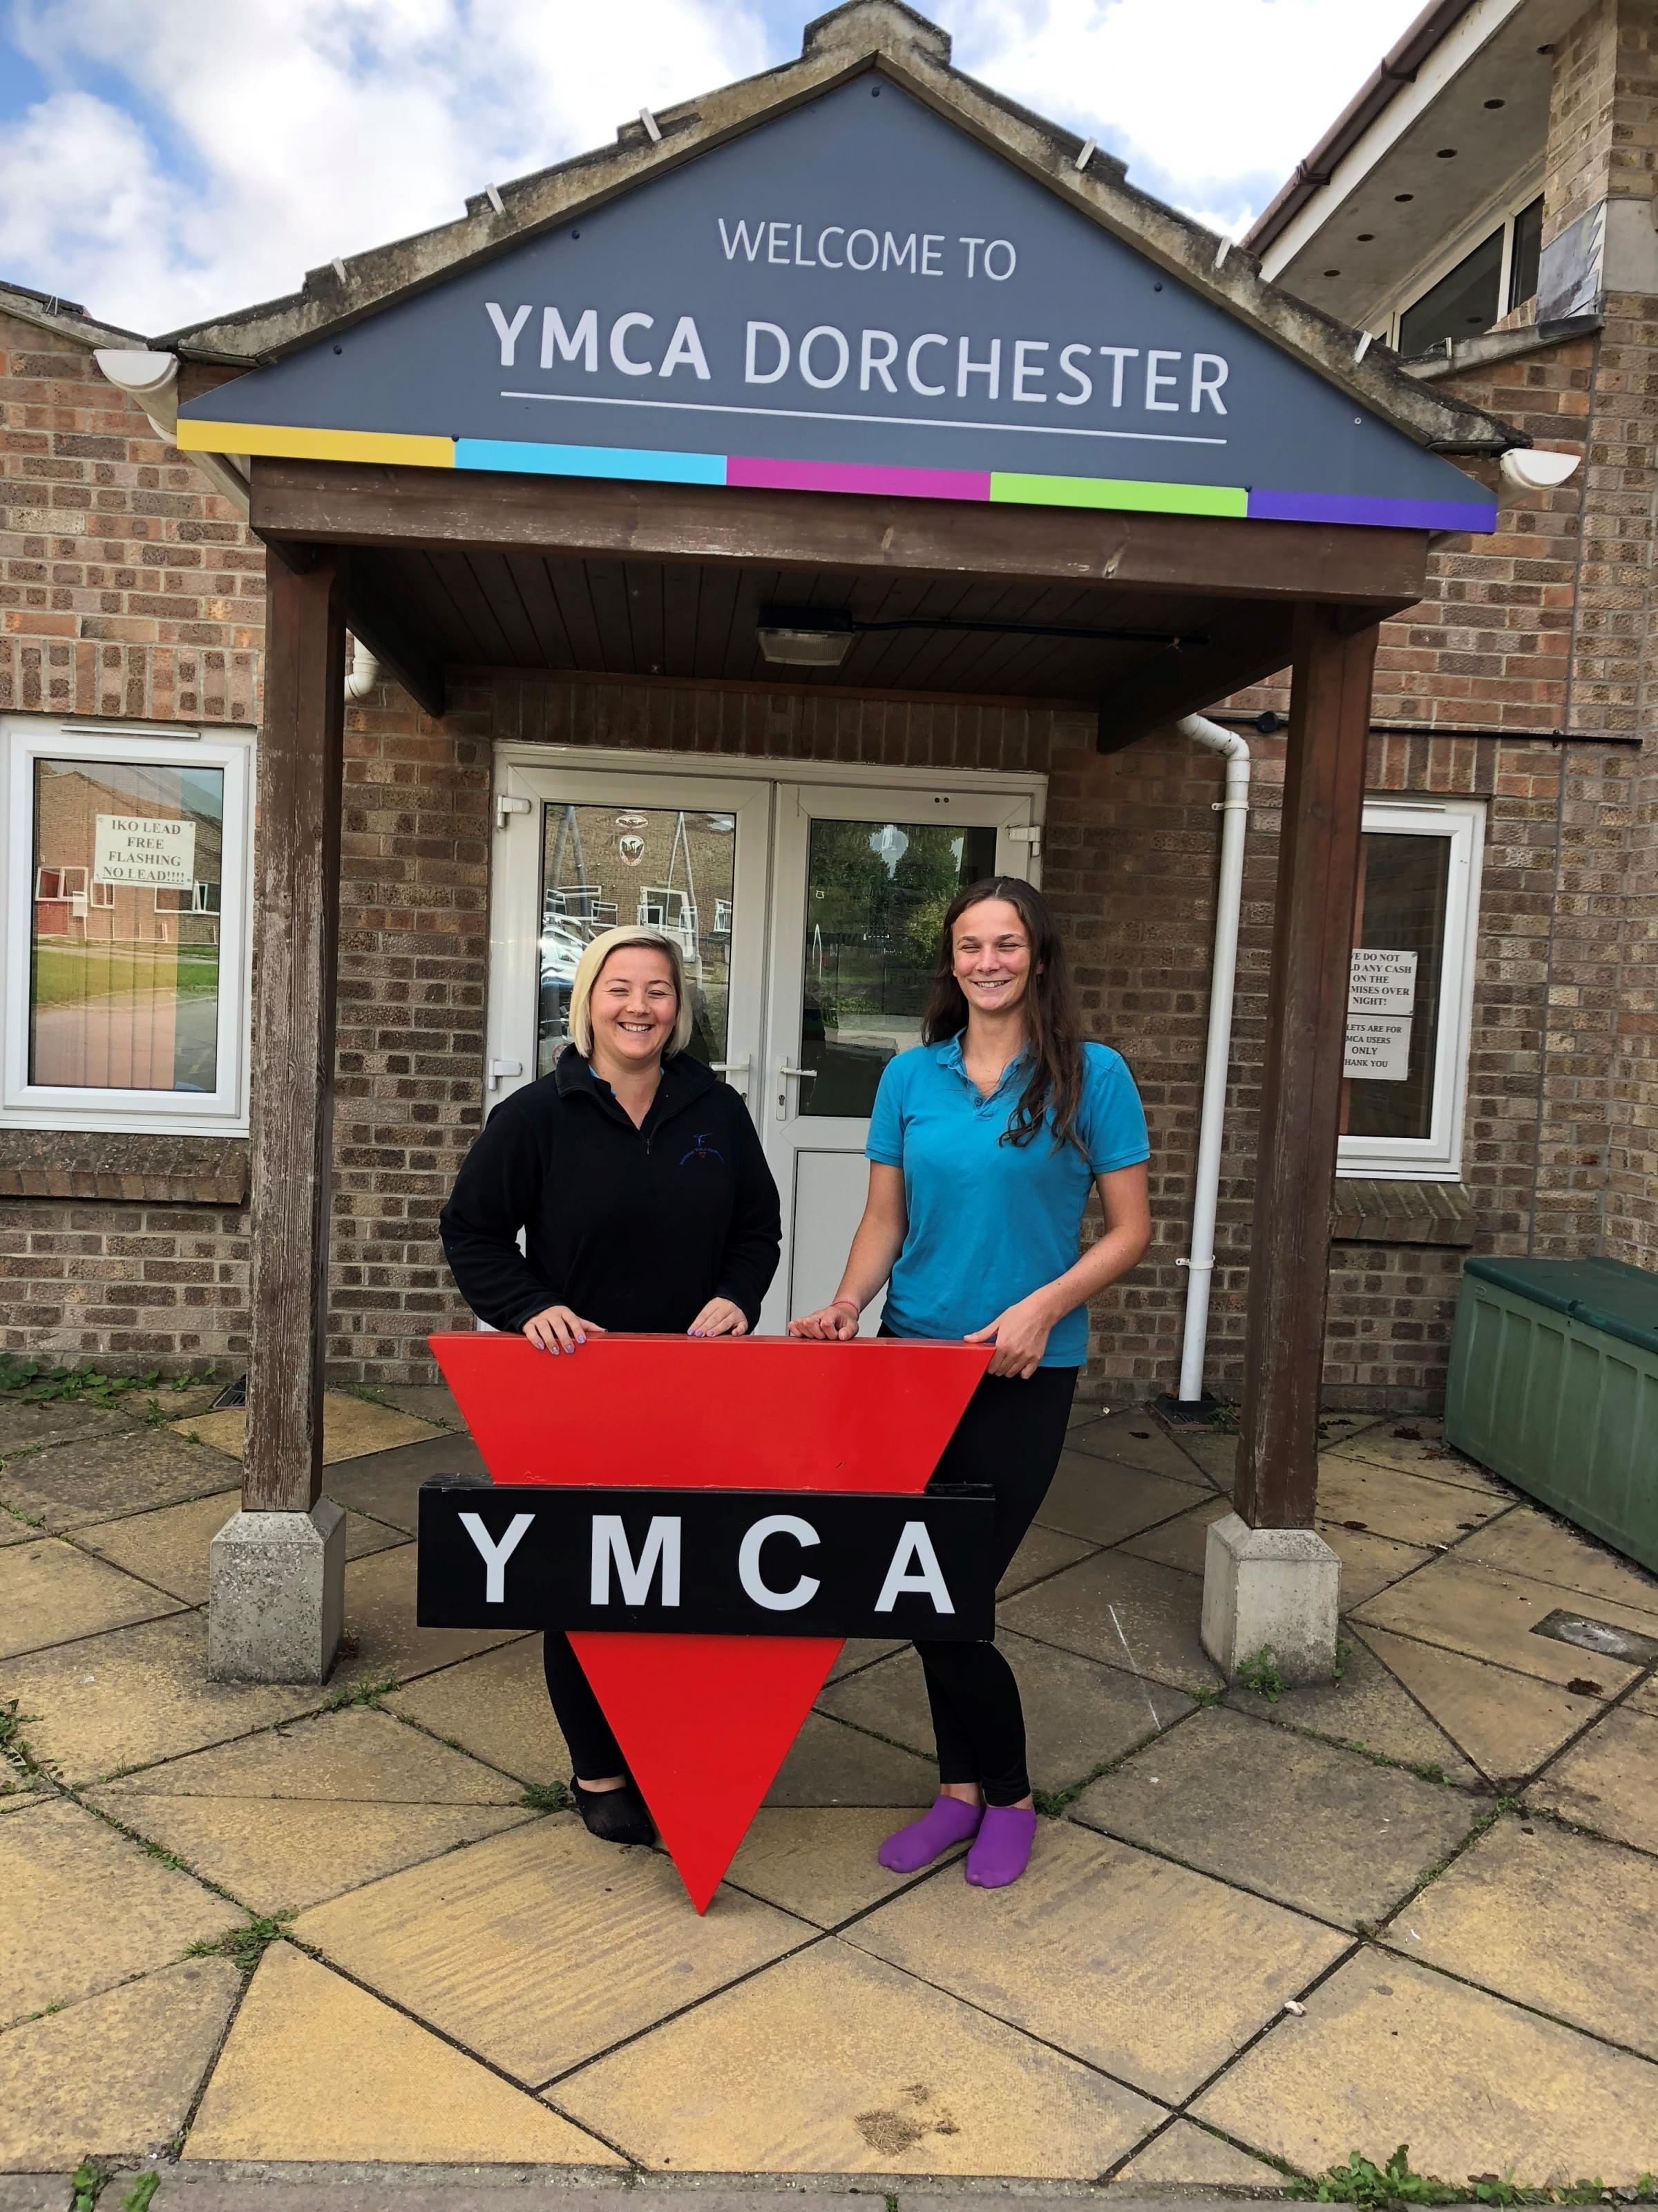 Dorchester YMCA is about to celebrate its 150th birthday